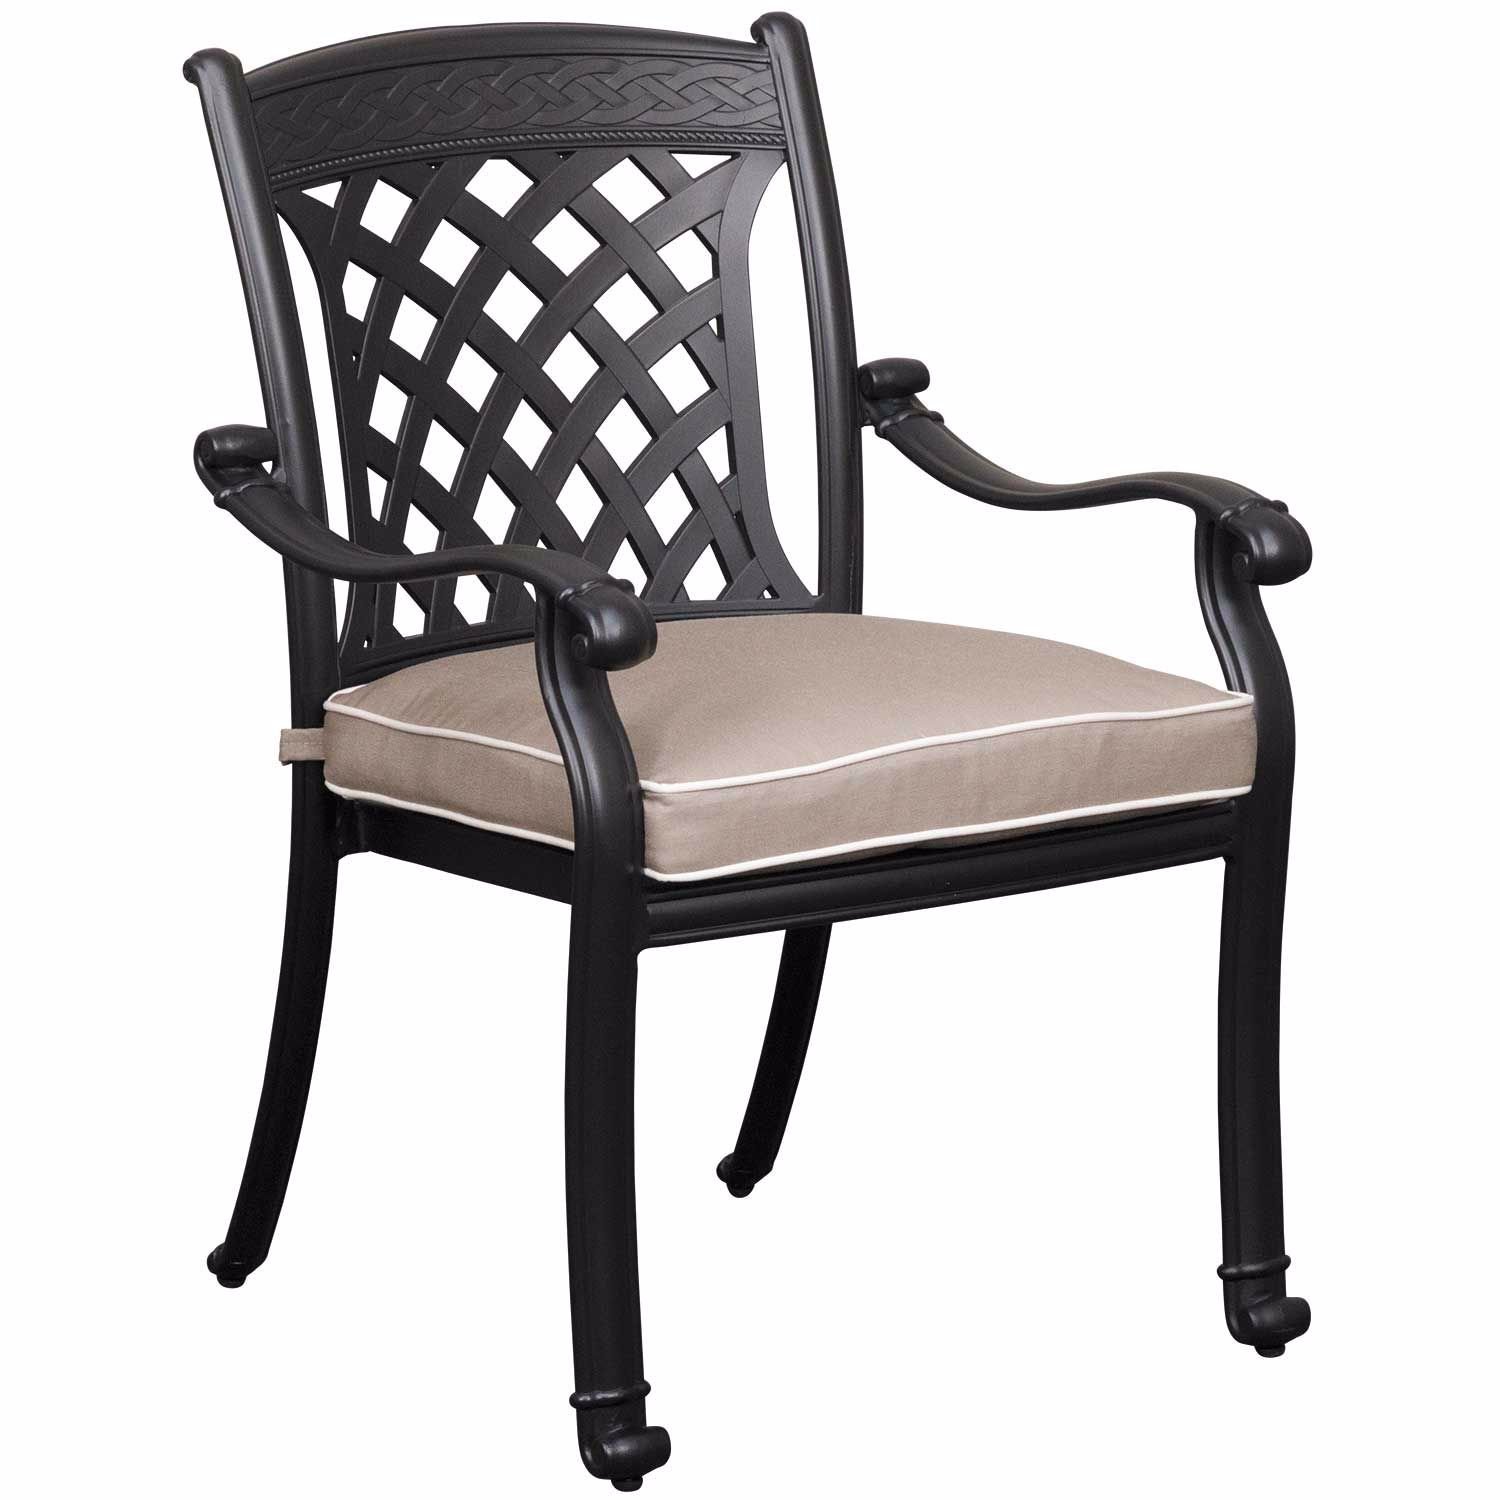 Picture of Santa Teresa Arm Chair with Cushion